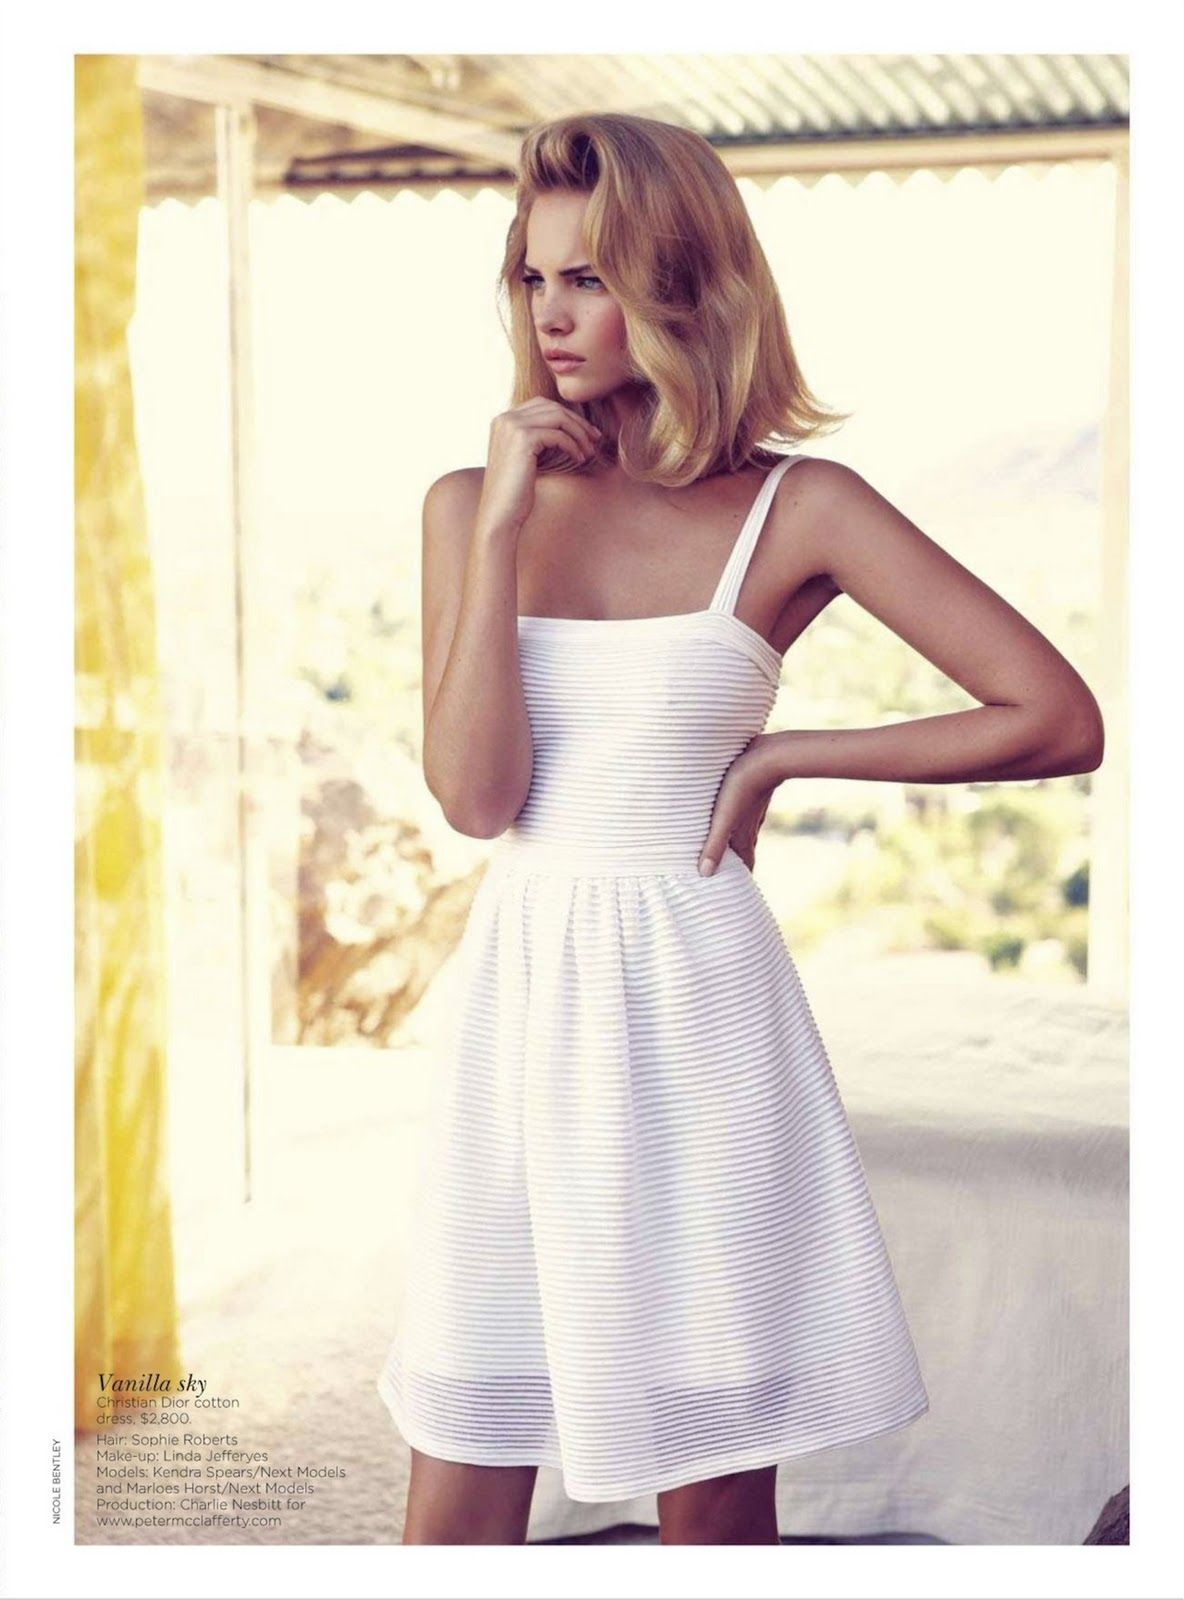 a place in the sun kendra spears and marloes horst by